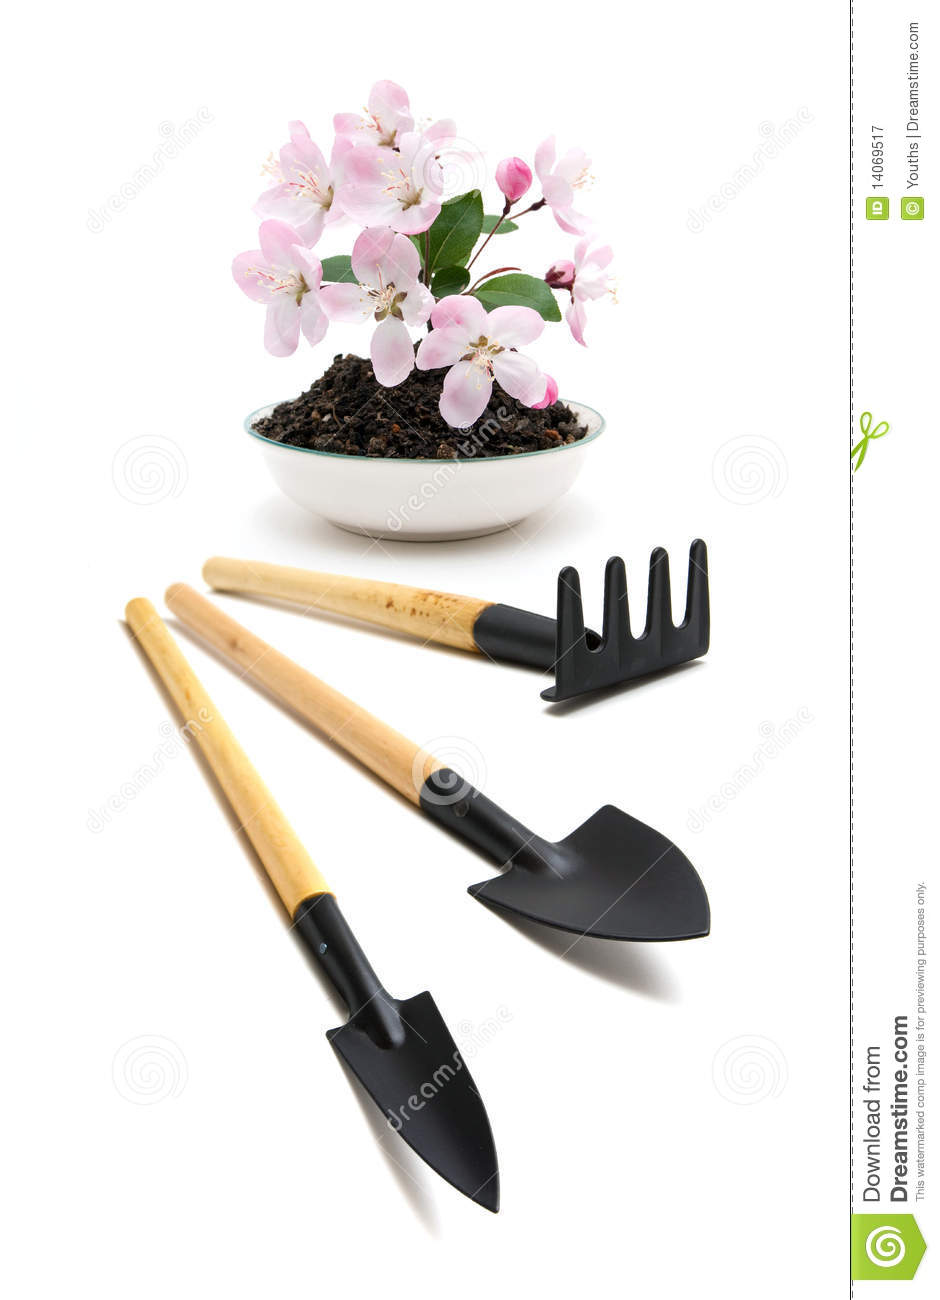 Agricultural Tools And Flower Royalty Free Stock